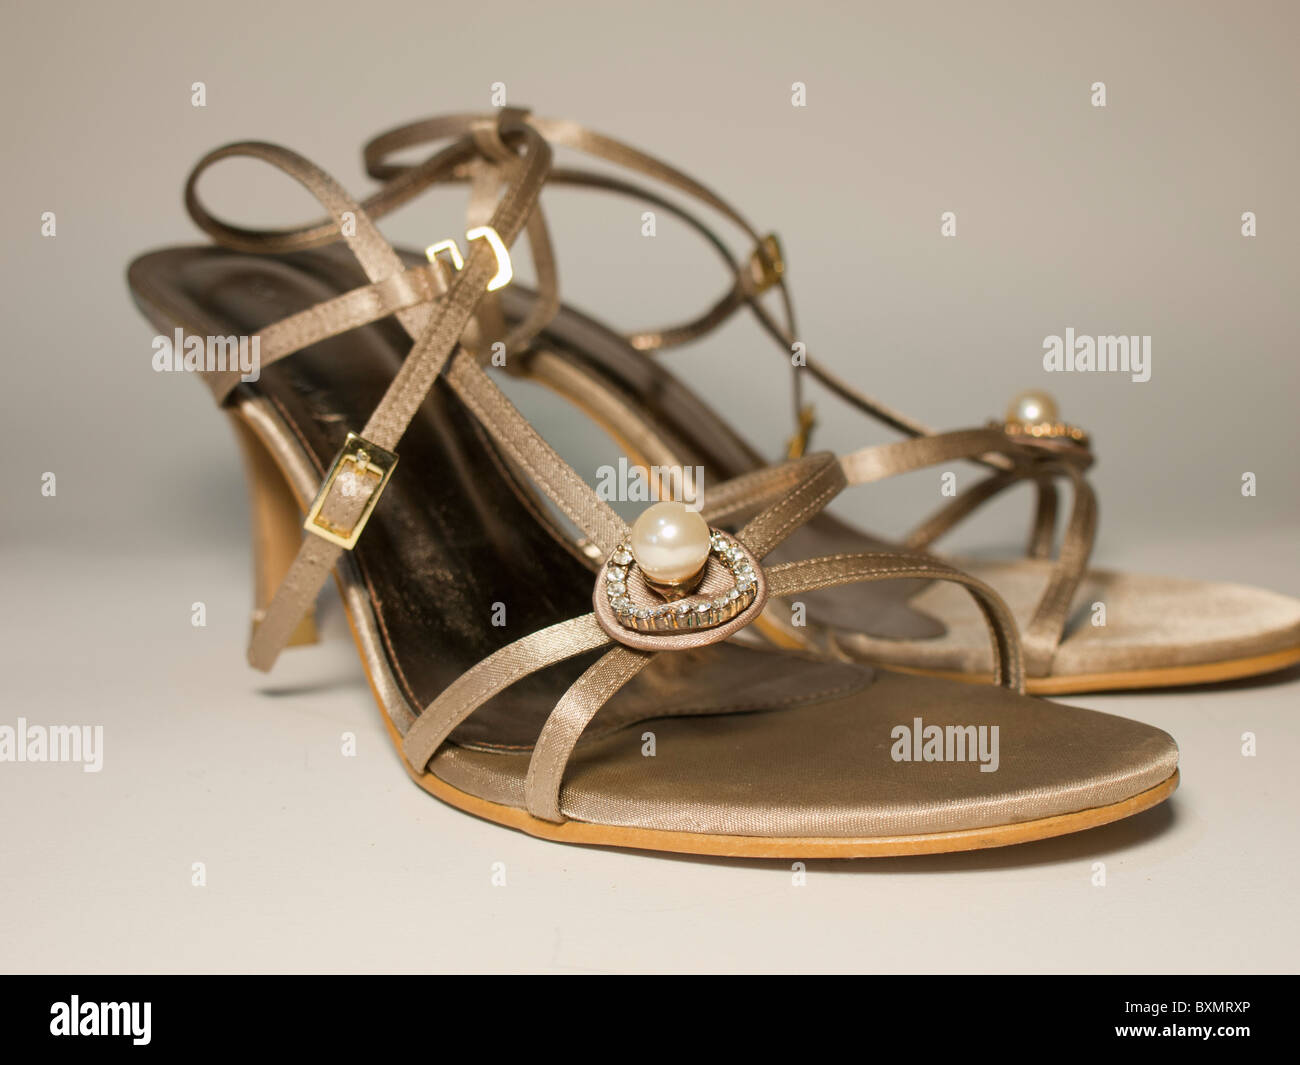 Idea for comfy wedding shoe, the brown satin wedding shoes with pearl. - Stock Image